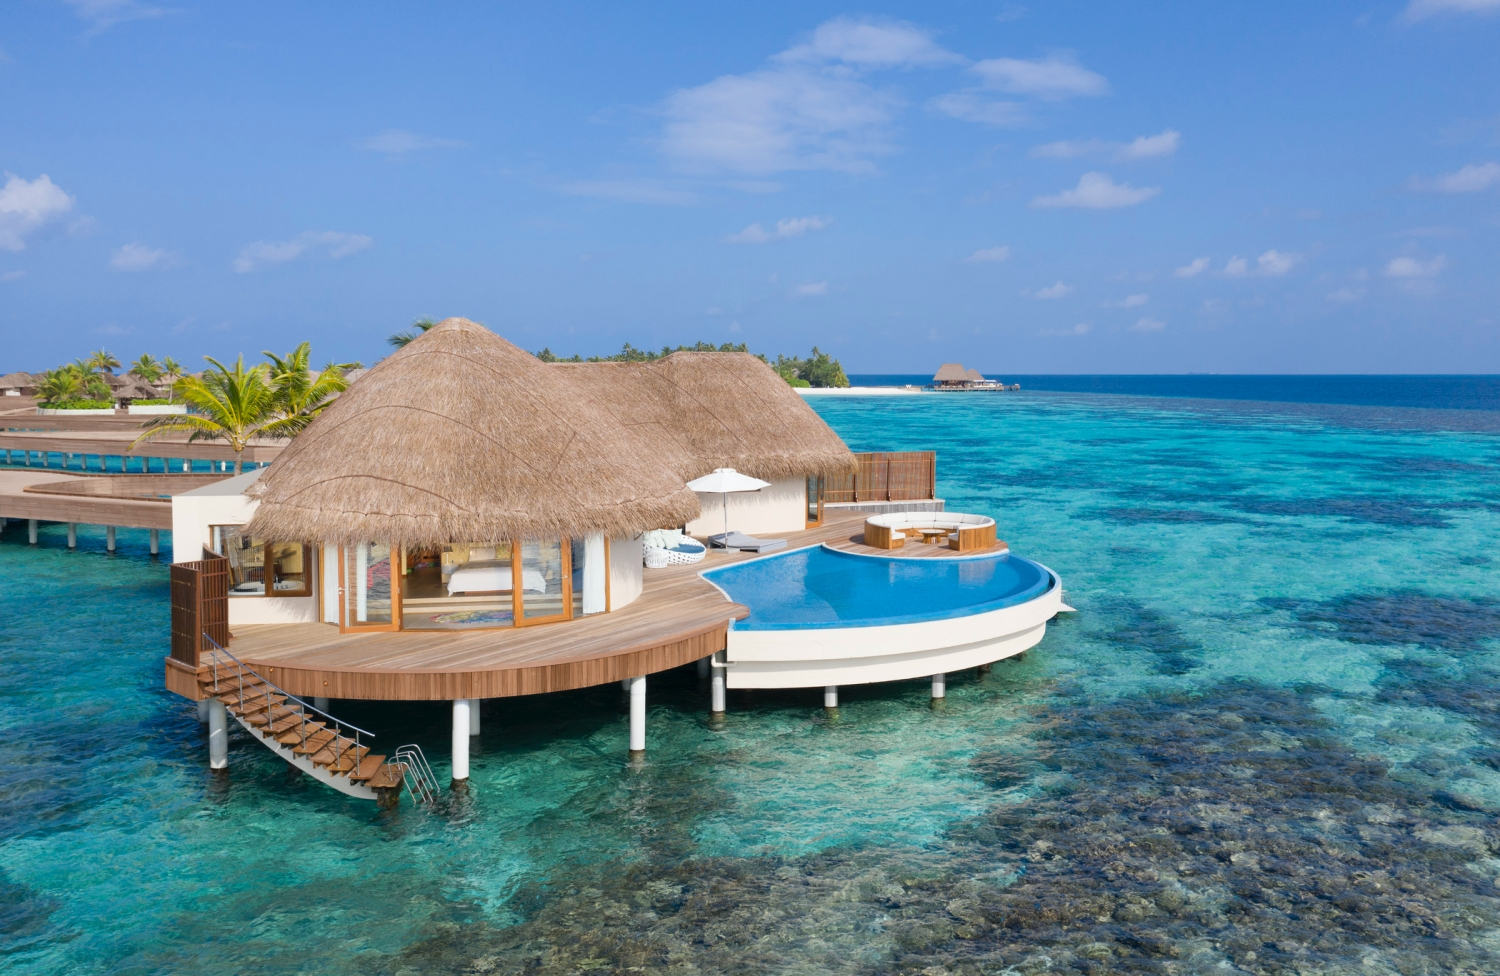 Marriott Bonvoy resorts in Maldives offer hard-to-miss festive packages